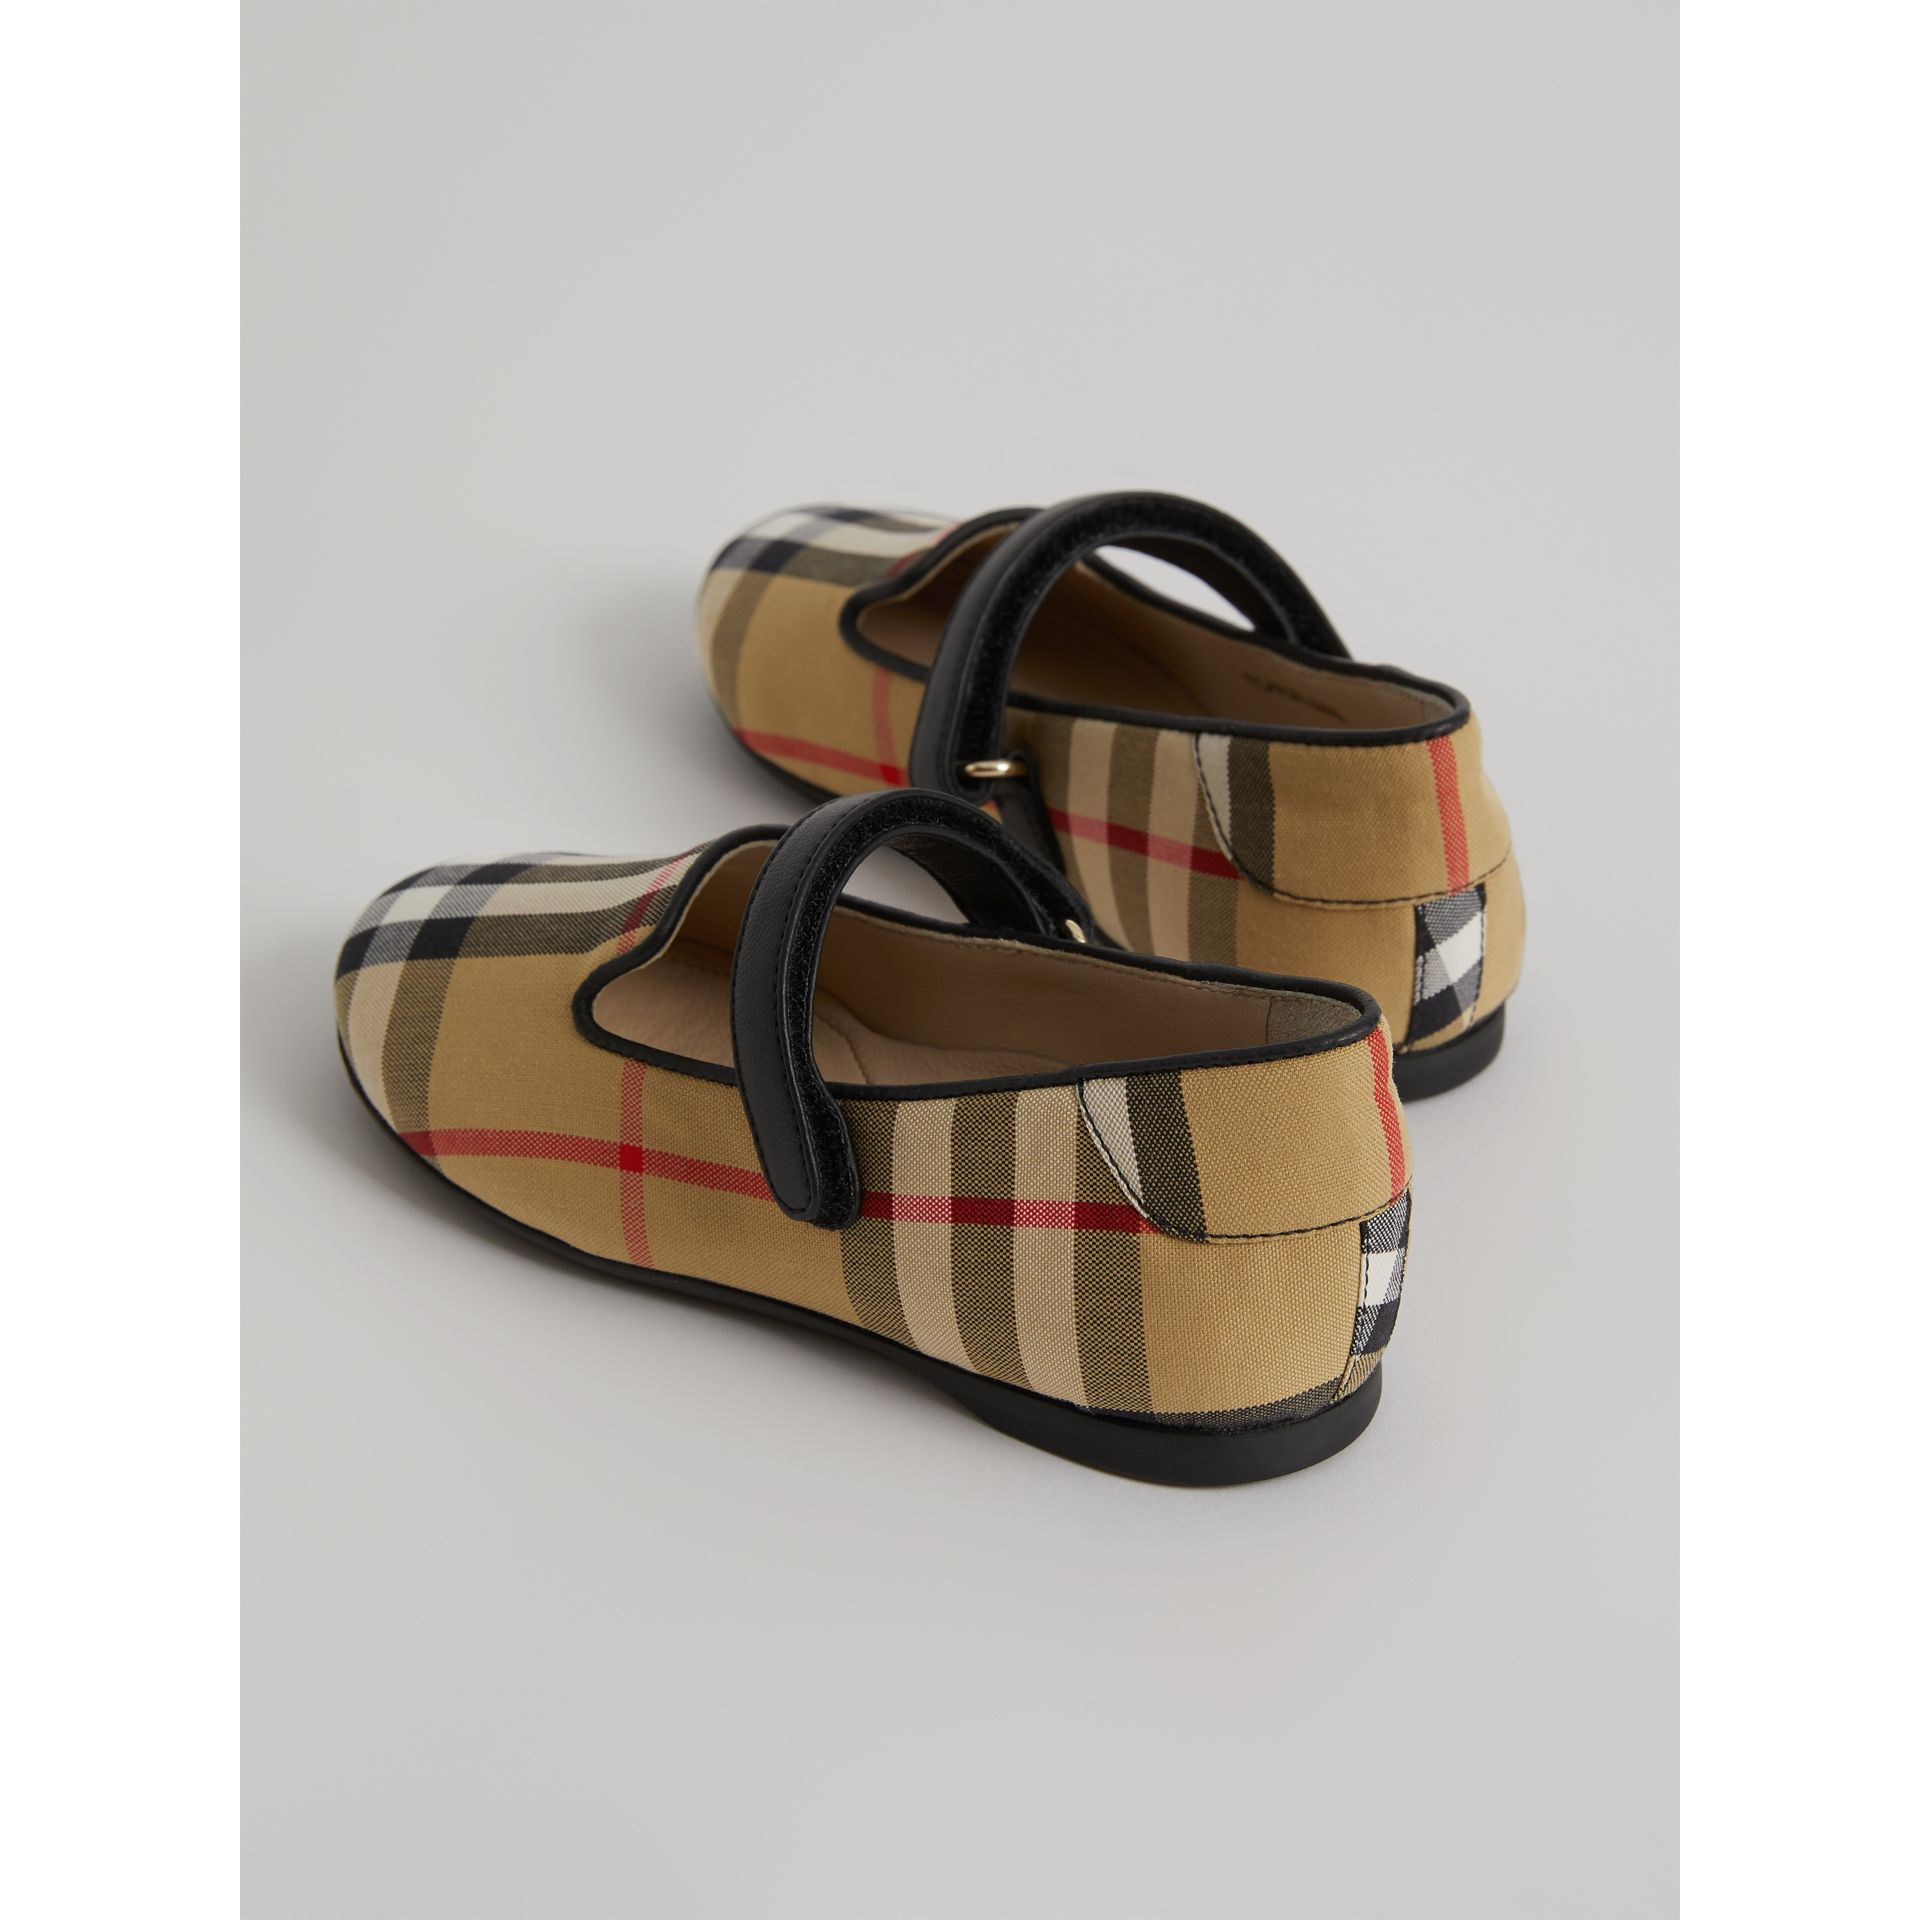 Slipper im Vintage Check-Design mit D-Ring-Riemen (Antikgelb) - Kinder | Burberry - Galerie-Bild 2